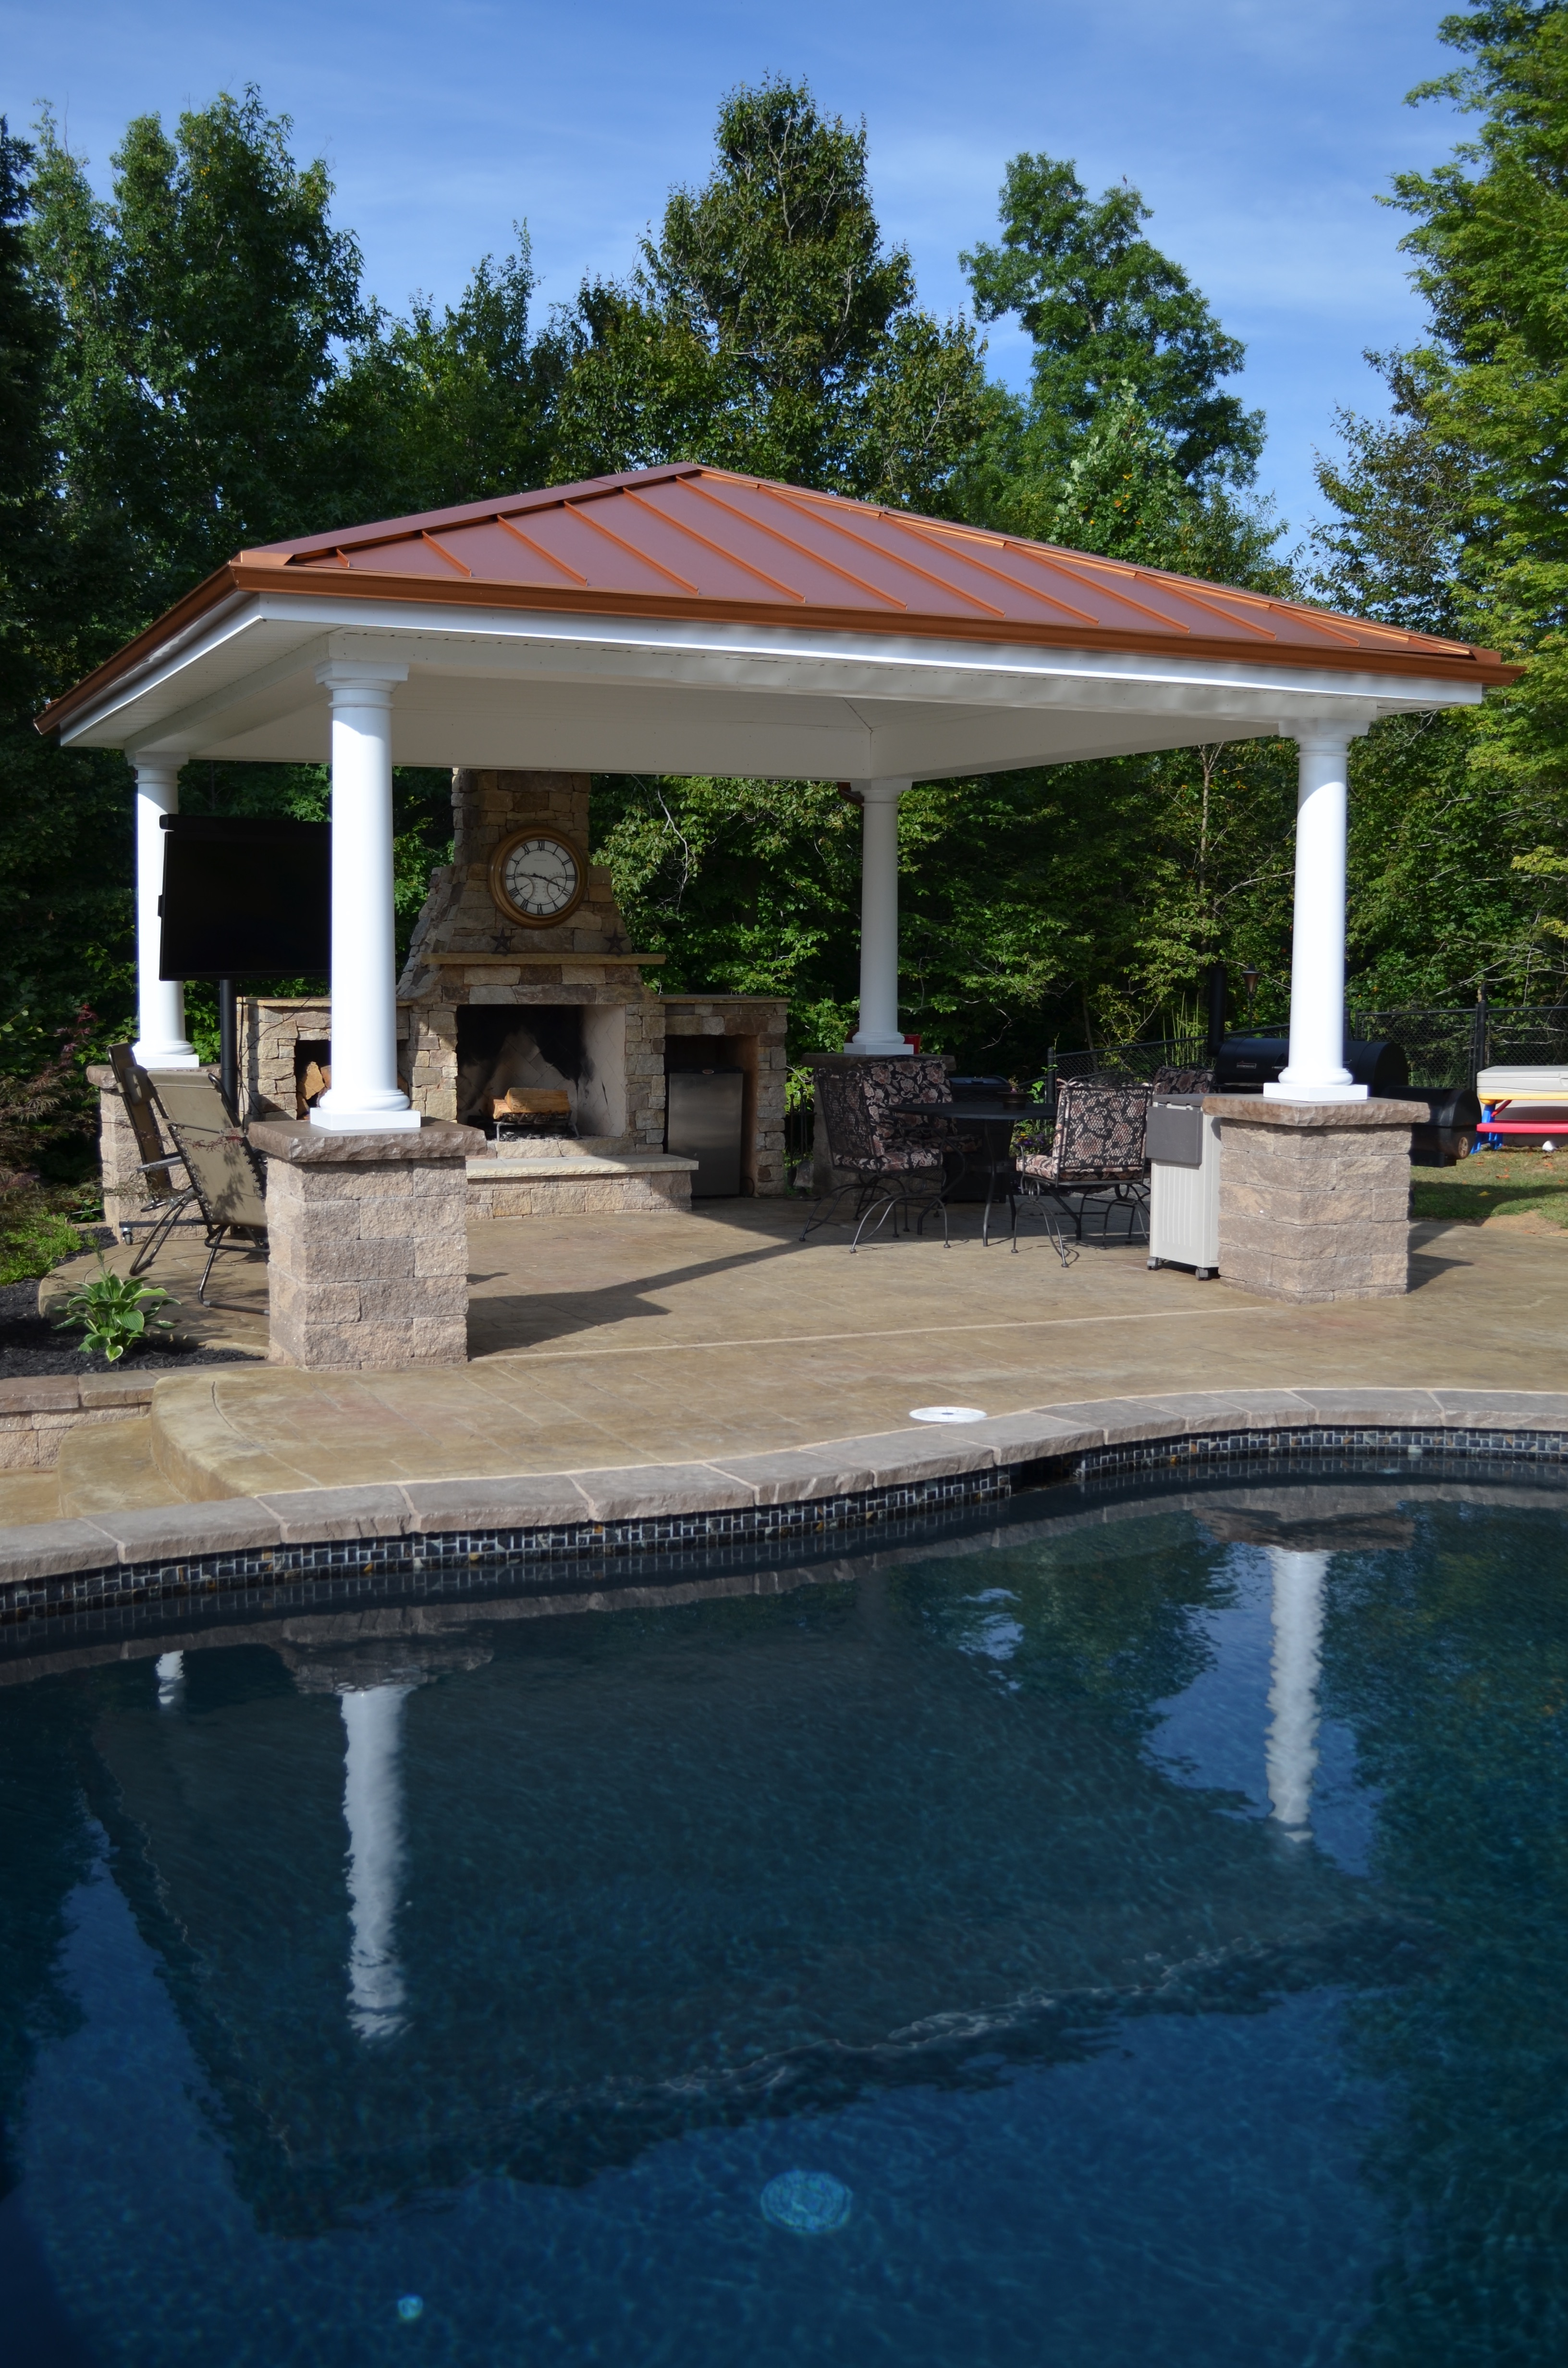 Pool Pavilion Swimming Pool Pavilion And Fire Pit | The Pool Company